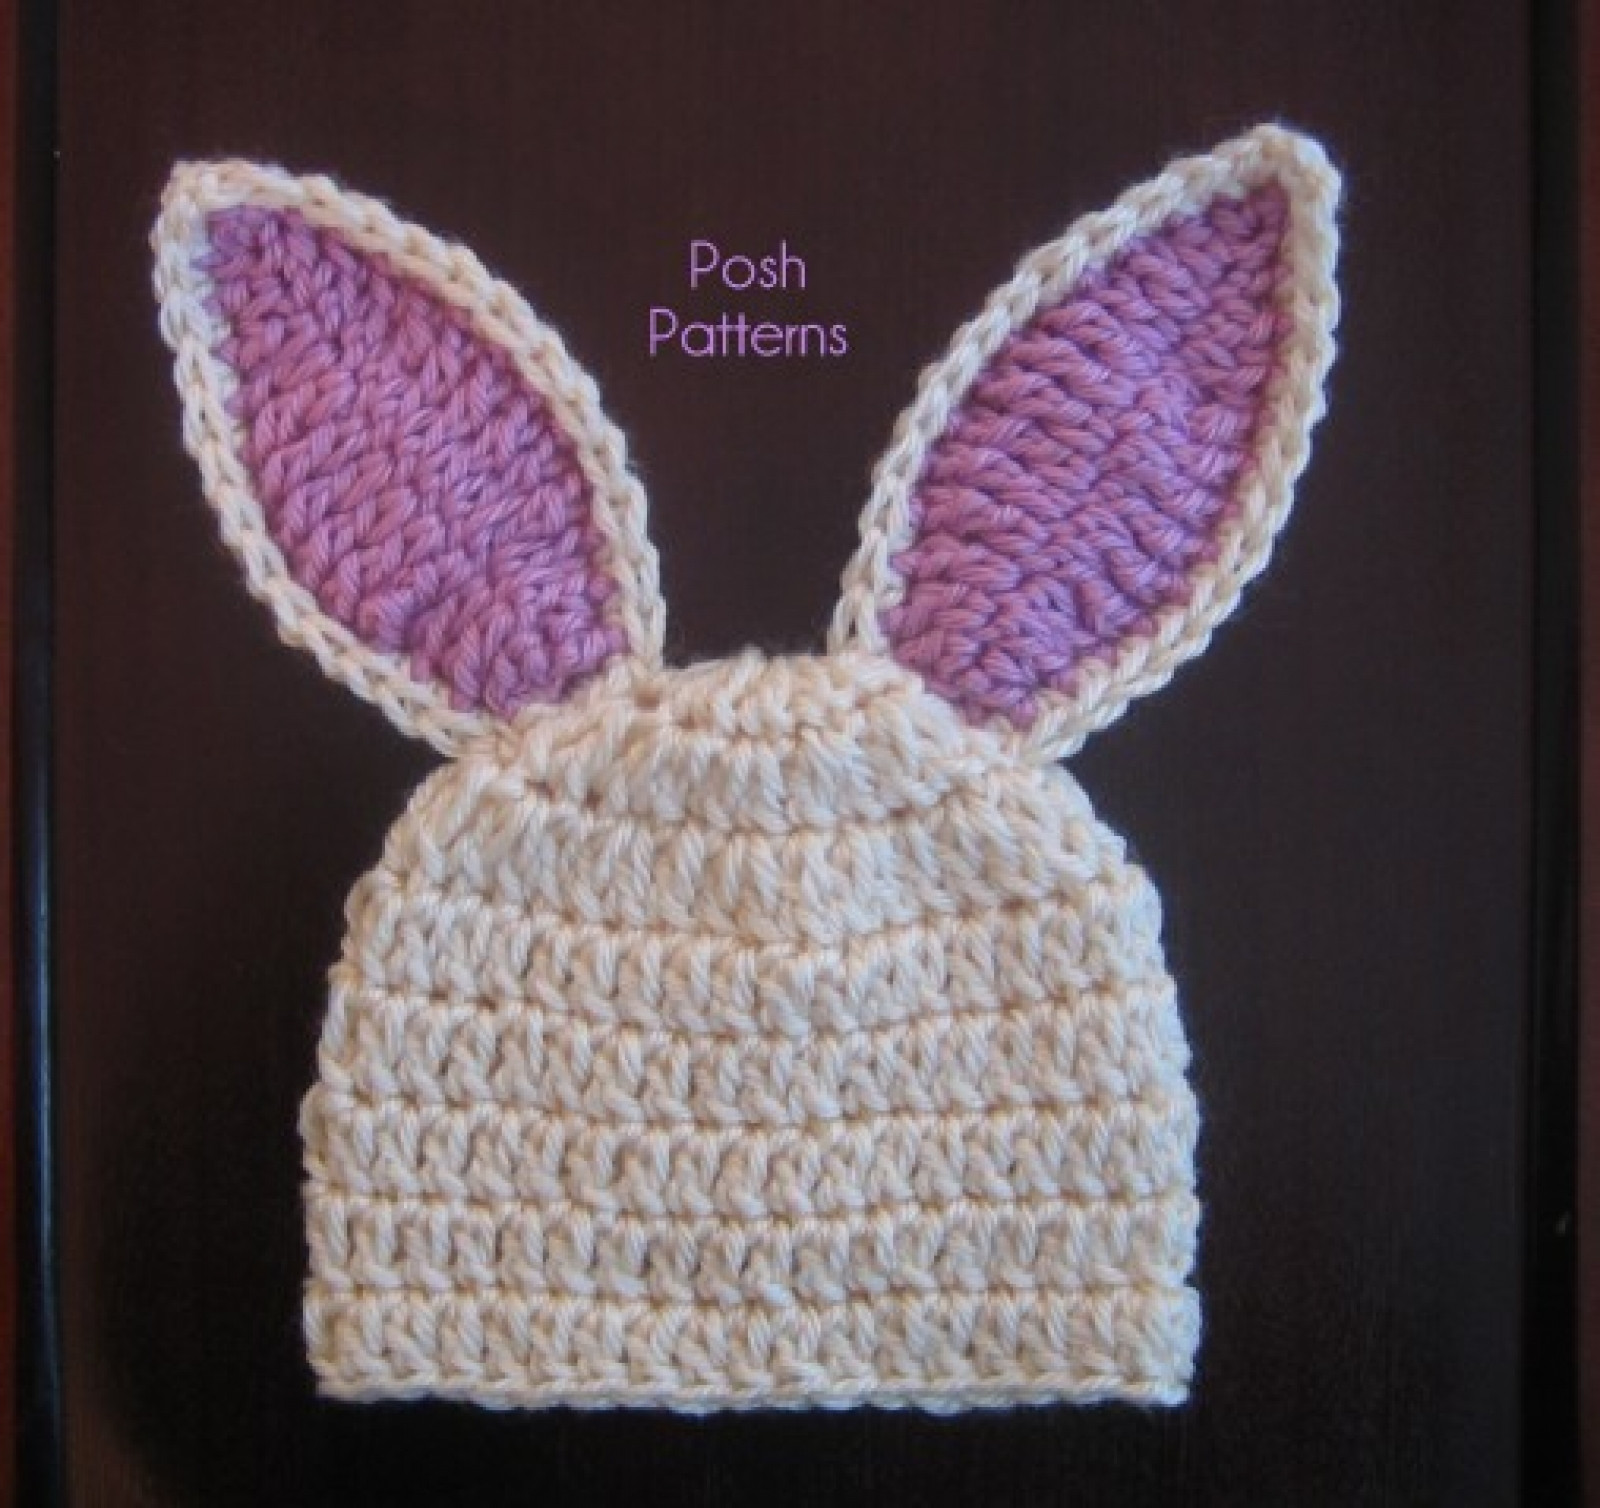 Crochet Easter Bunny Pattern New Crochet Easter Bunny Hat Pattern Sizes Newborn to 24 Months Of Amazing 42 Photos Crochet Easter Bunny Pattern